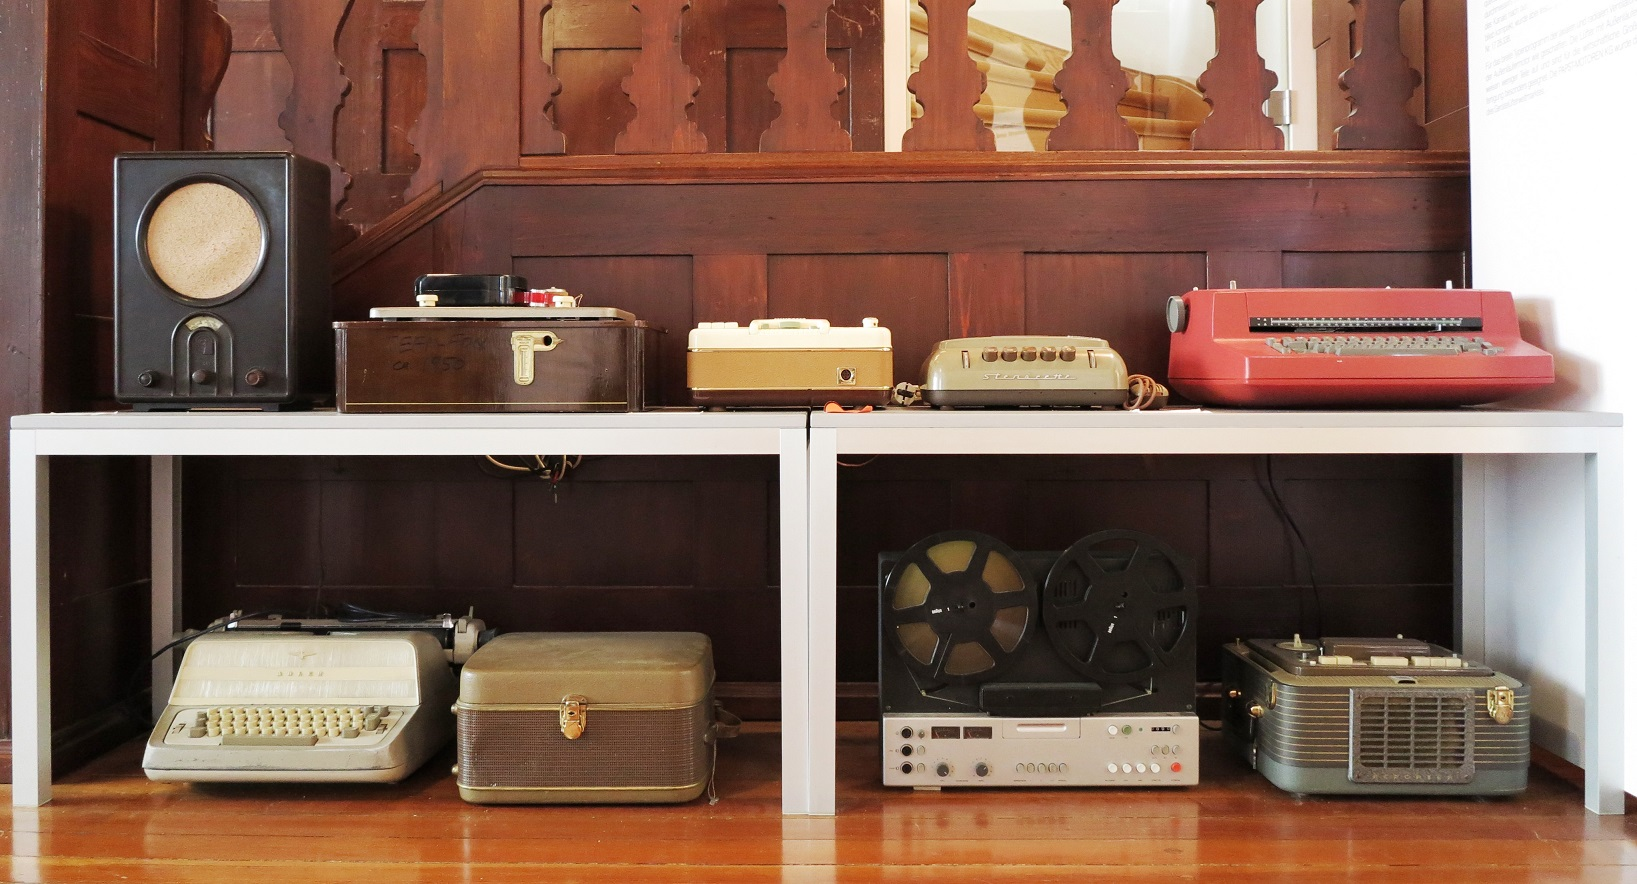 Application examples of the first large volume applications:</br> - 'Volksempfänger' –radio with low overtone loudspeaker </br> - tape recording devices: Grundig, Telefunken, Braun, Dictaphone 'Stenorette'</br> - electric type writers: IBM, Triumph Adler